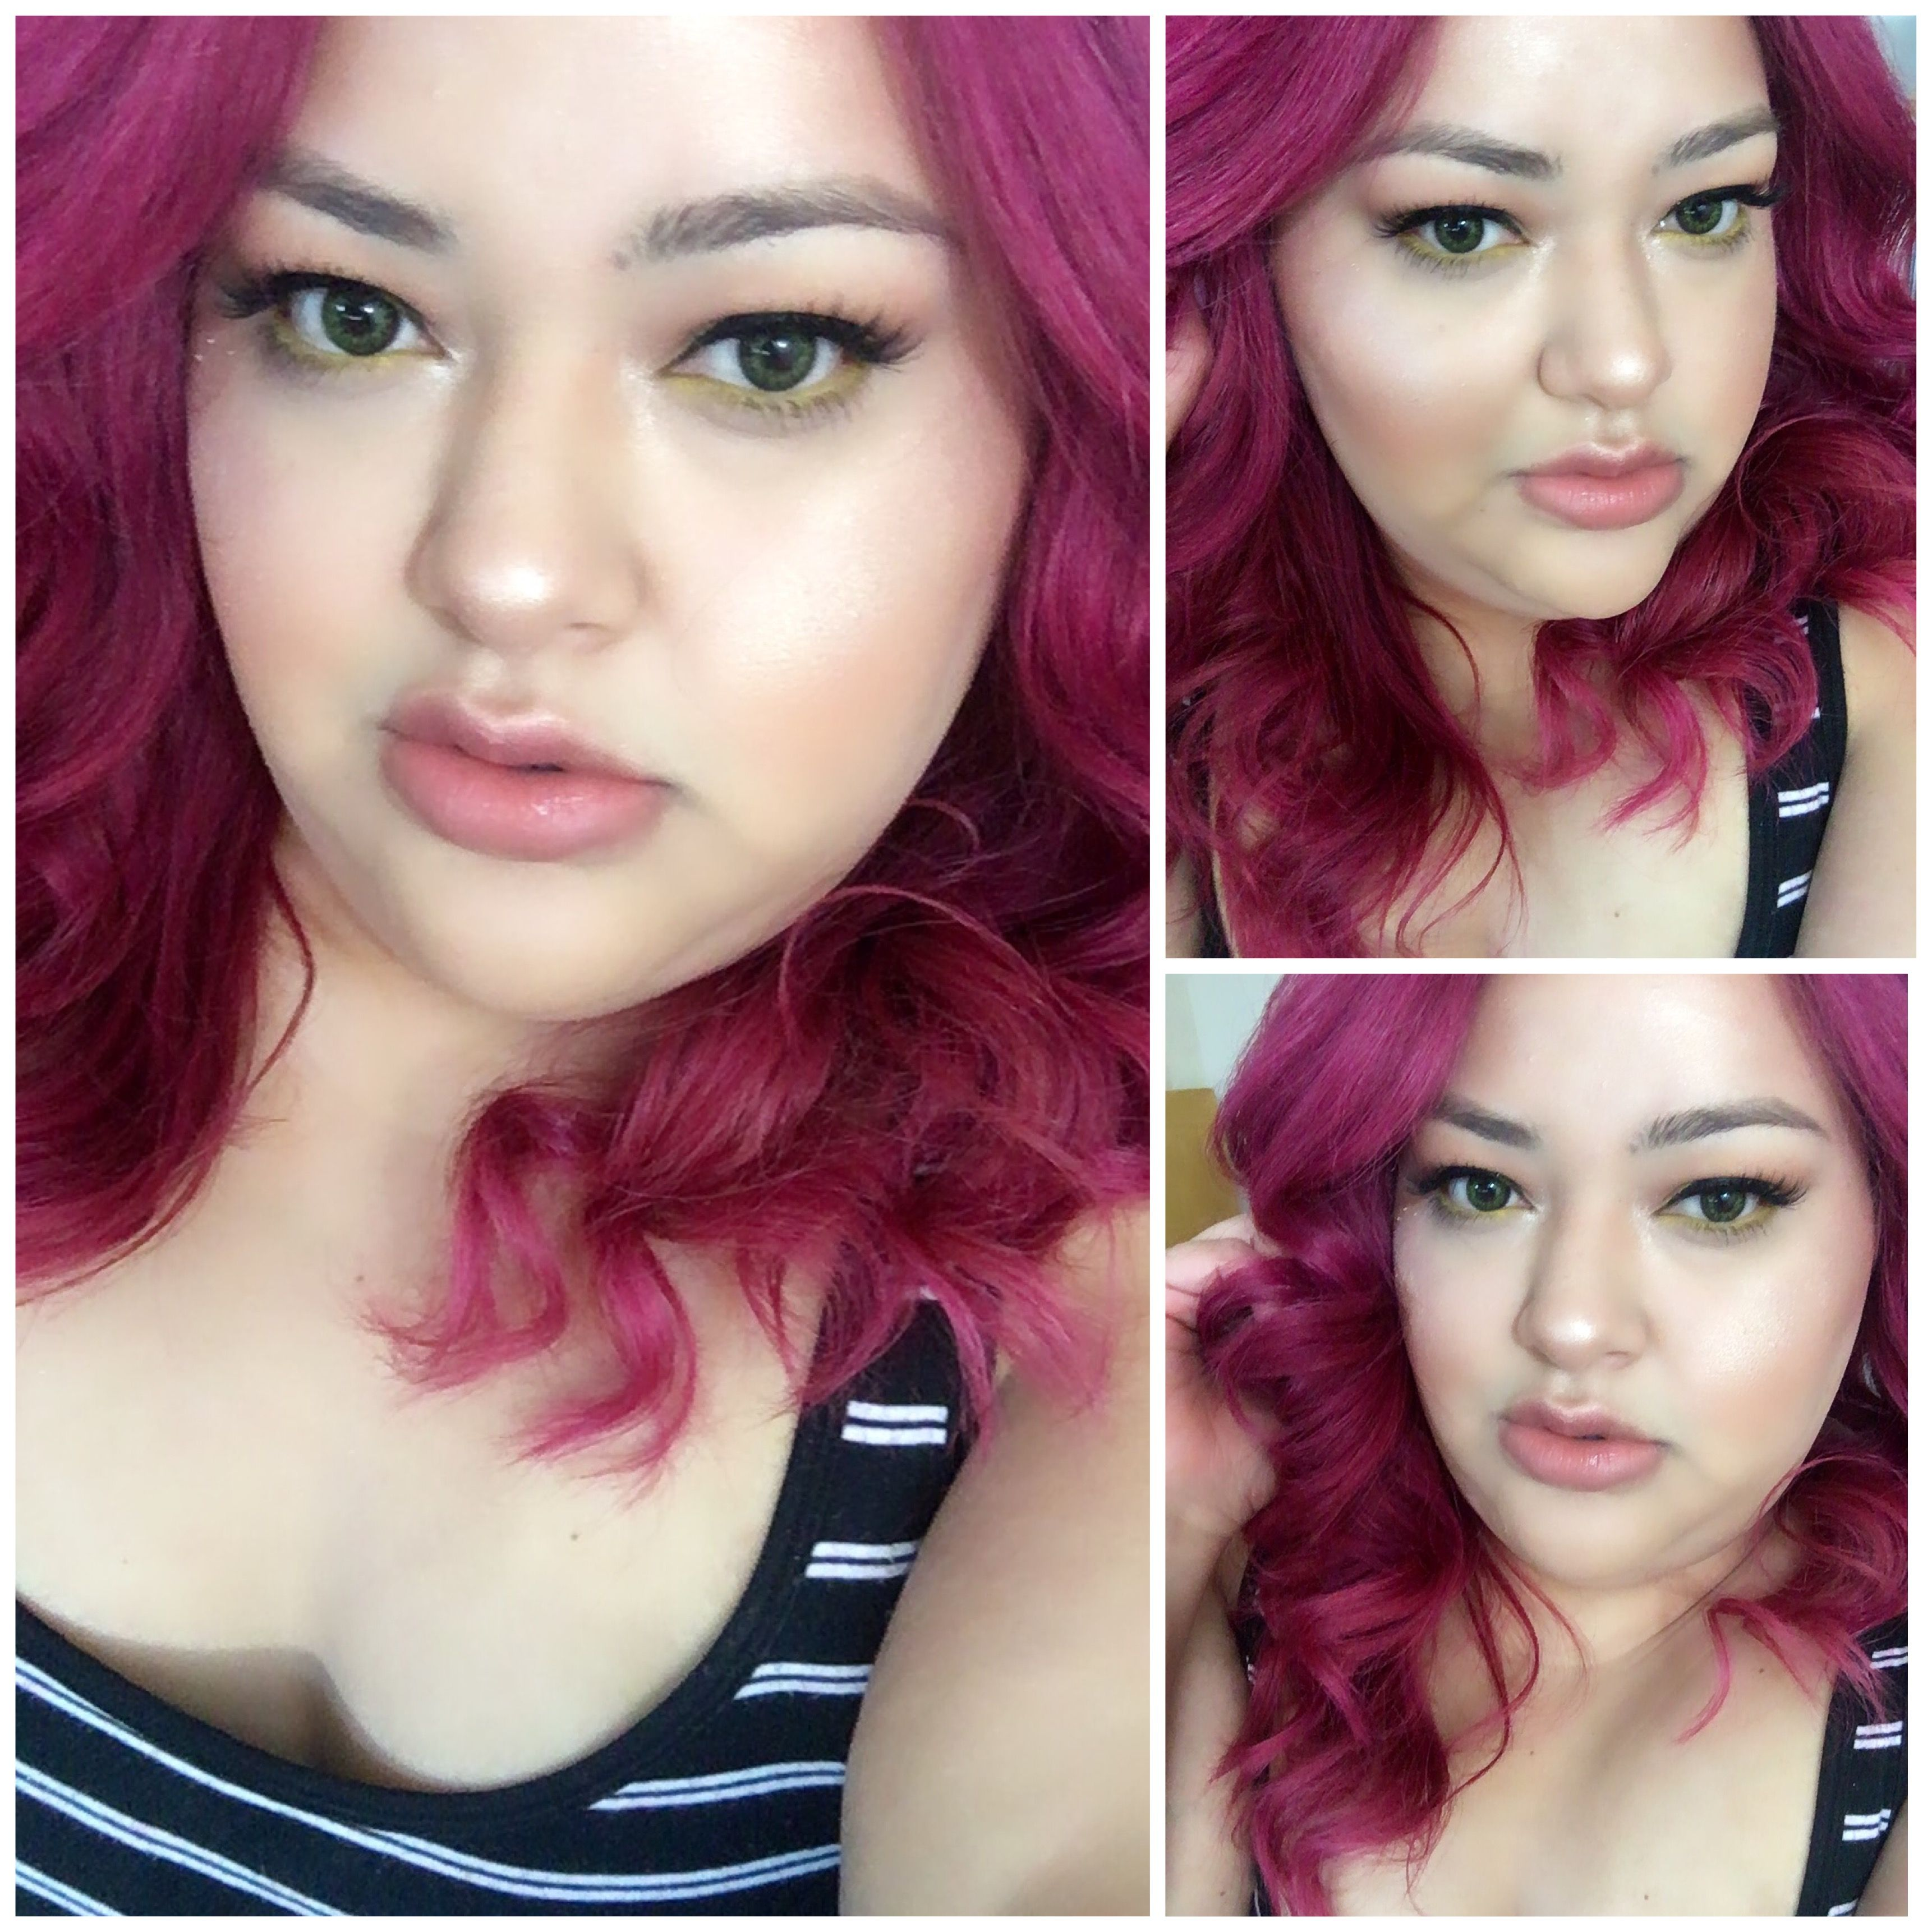 New Haircolor Using Clairol Flare Me Colors Rose To The Occasion